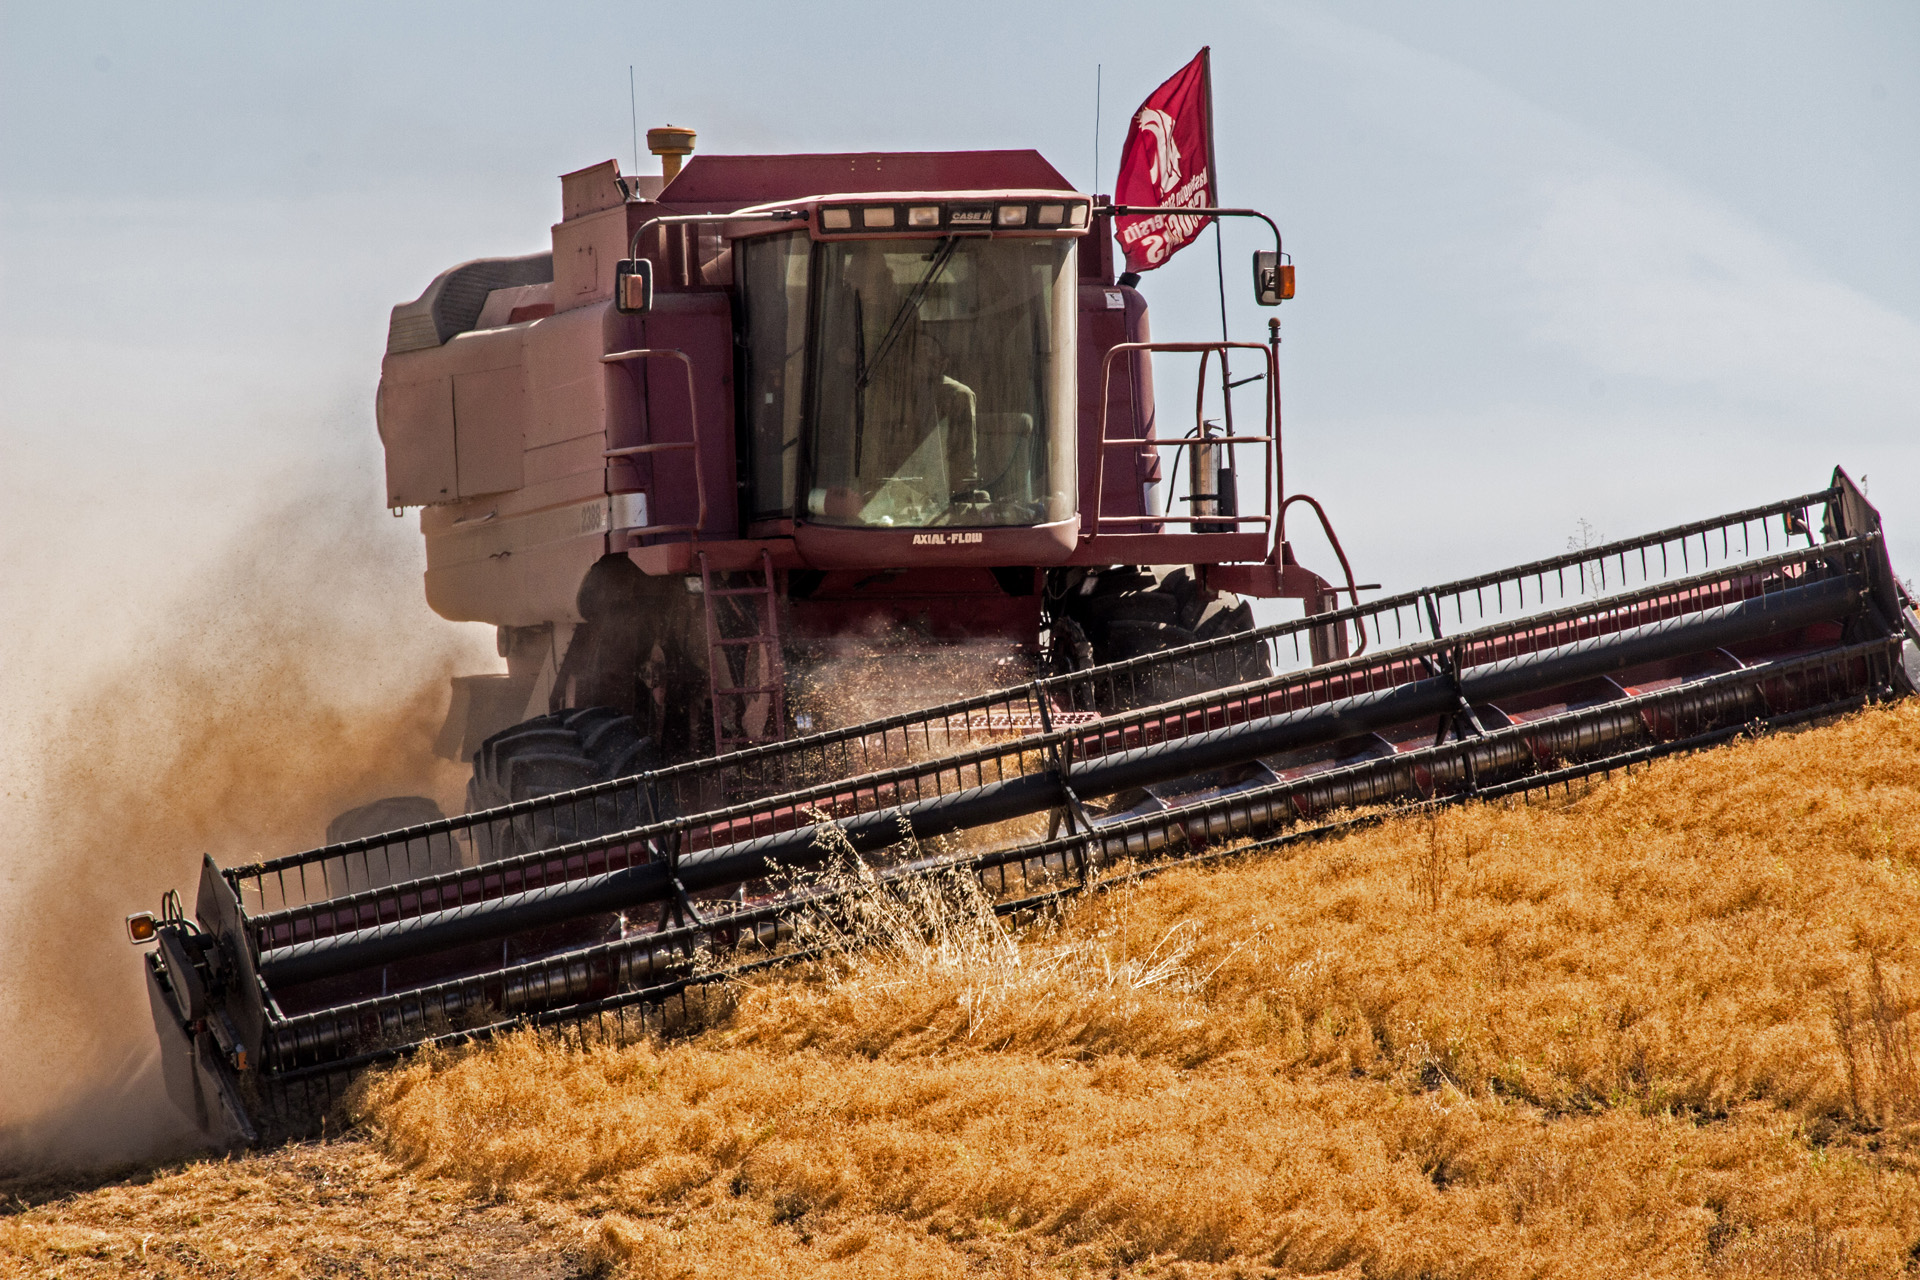 Harvesting in the Palouse - Digital (Action) - Name Withheld Per Request